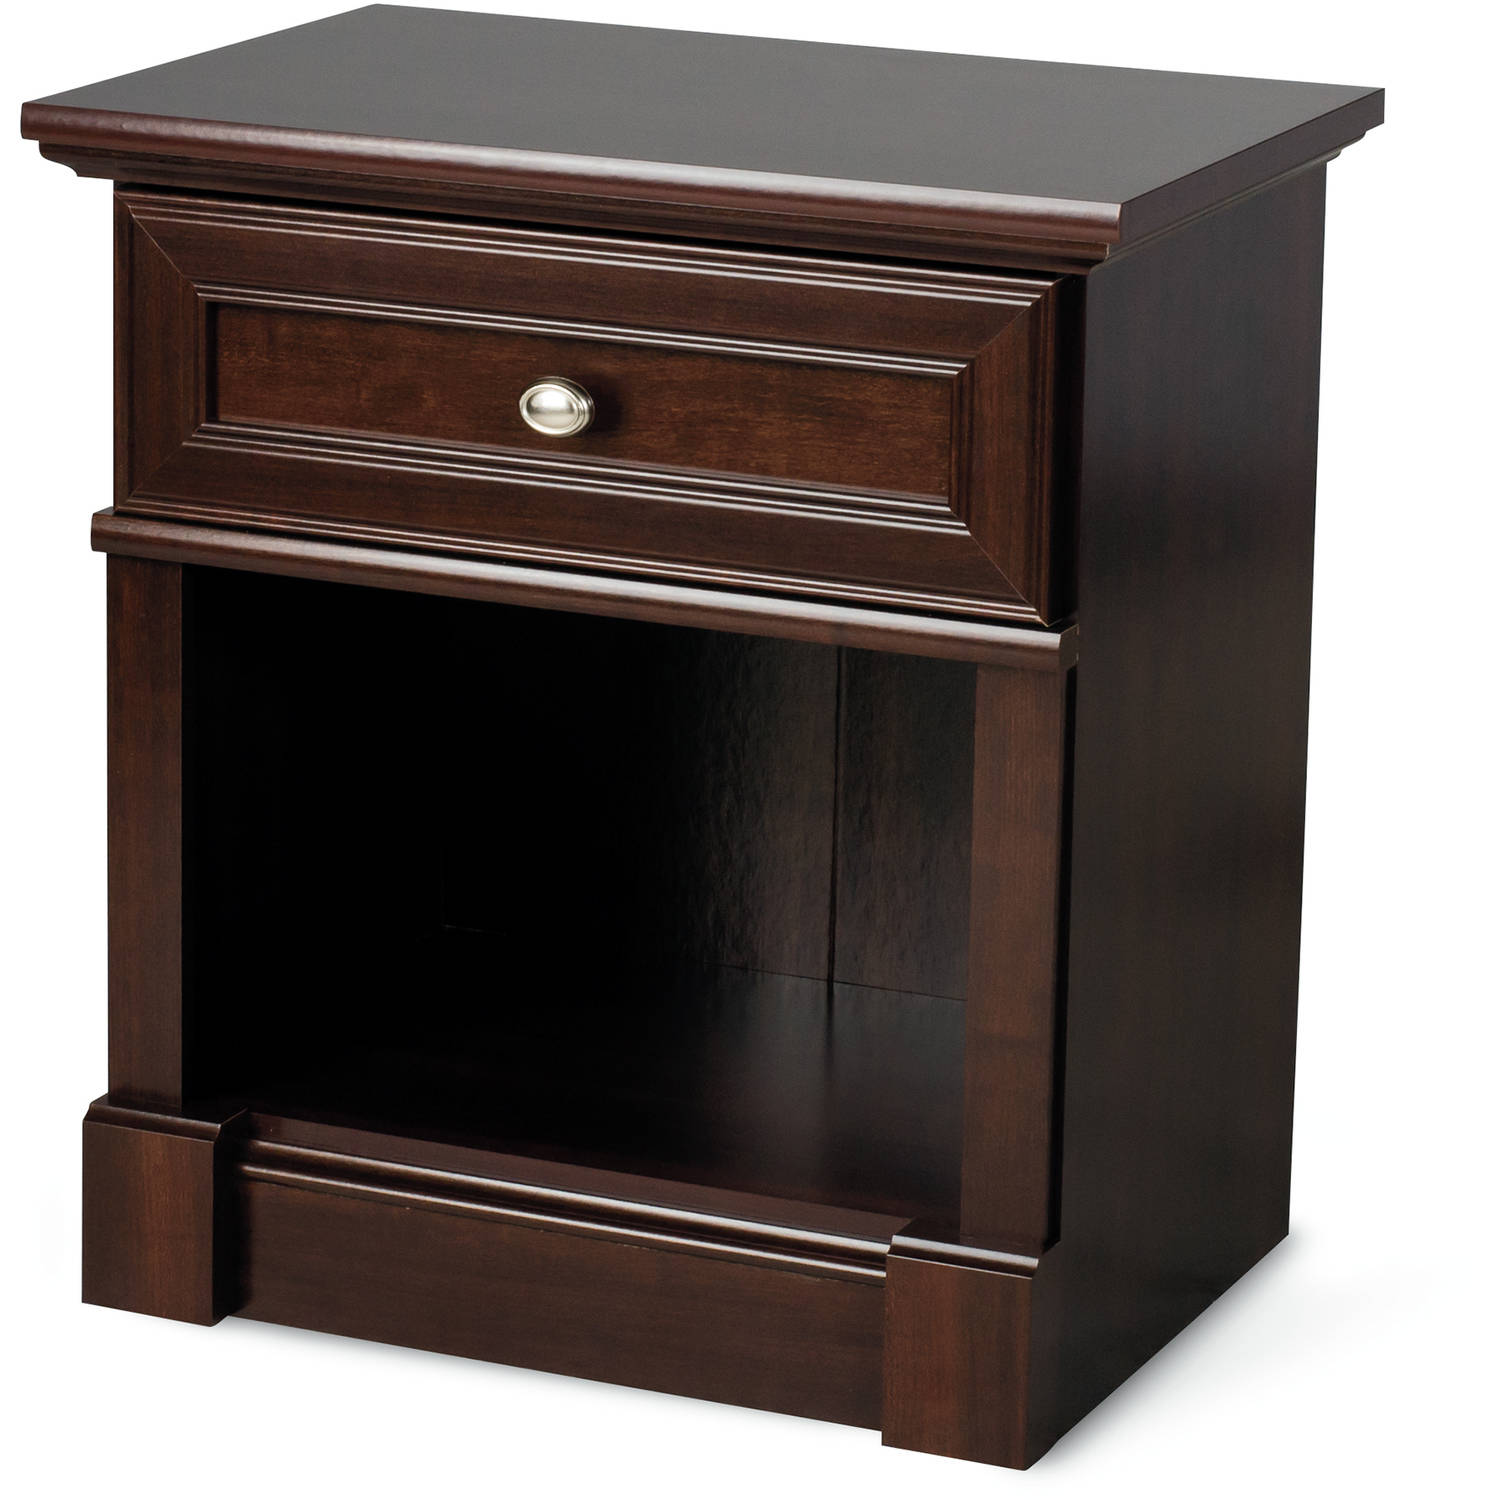 Child Craft Updated Classic Ready-to-Assemble Night Stand, Select Cherry